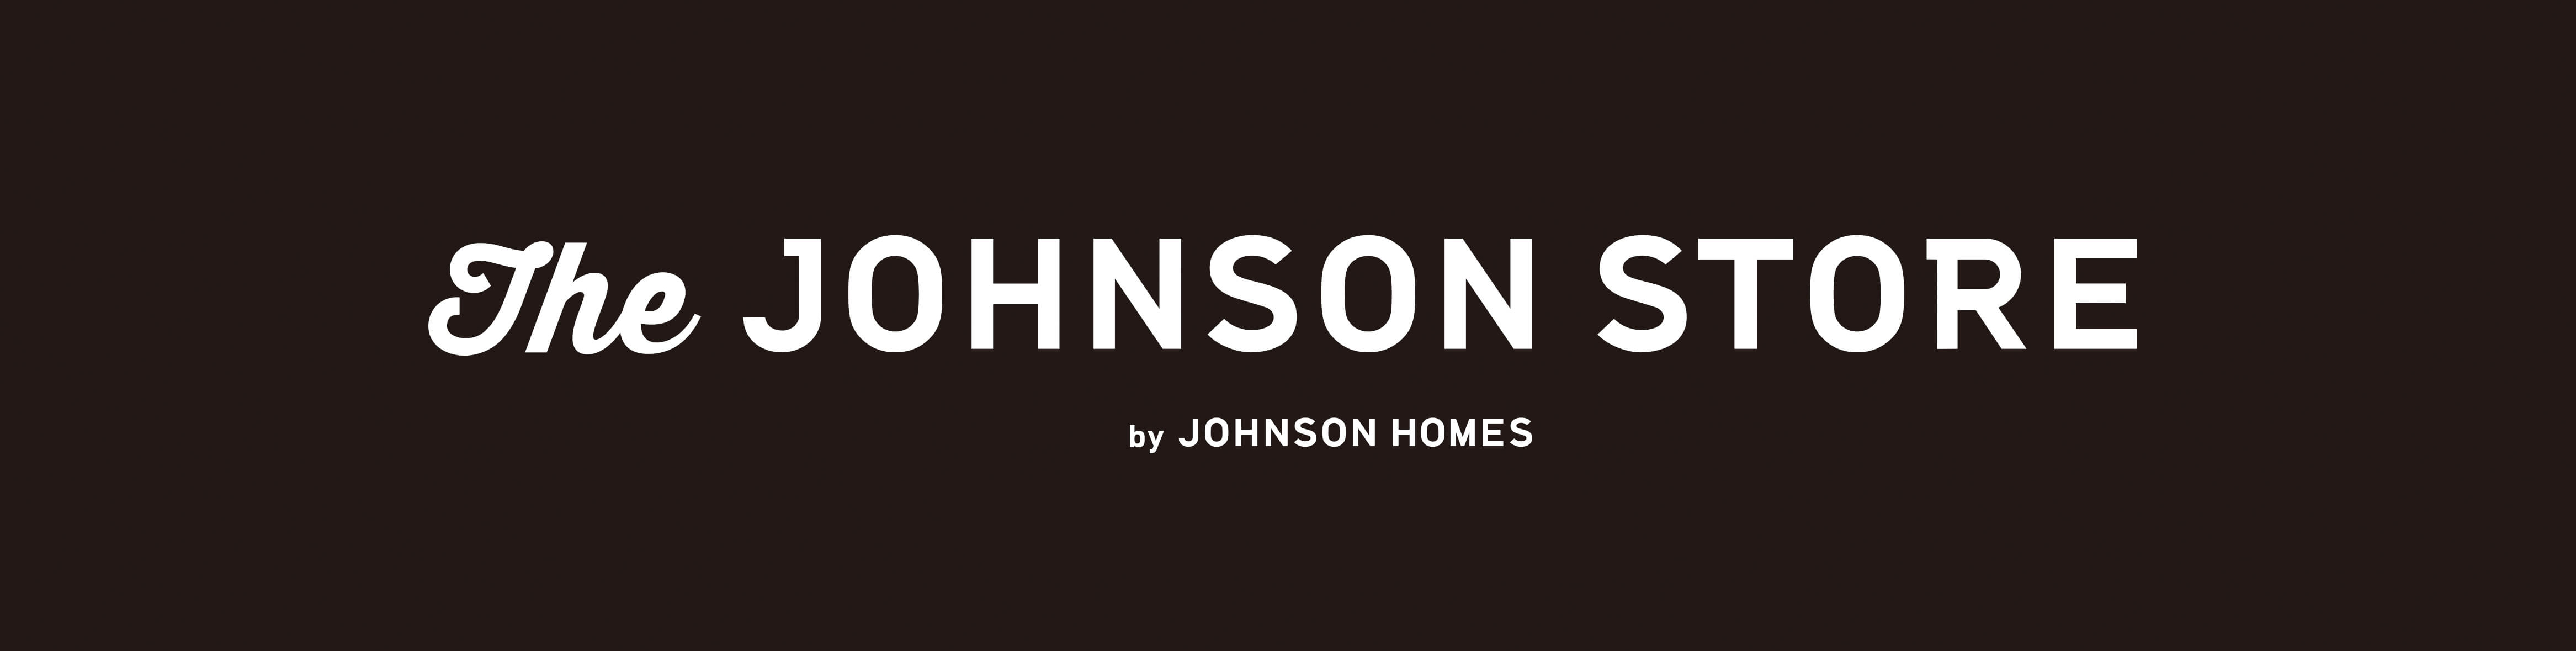 the JOHNSON STORE by JOHNSON HOMES 11.17th Sat OPEN